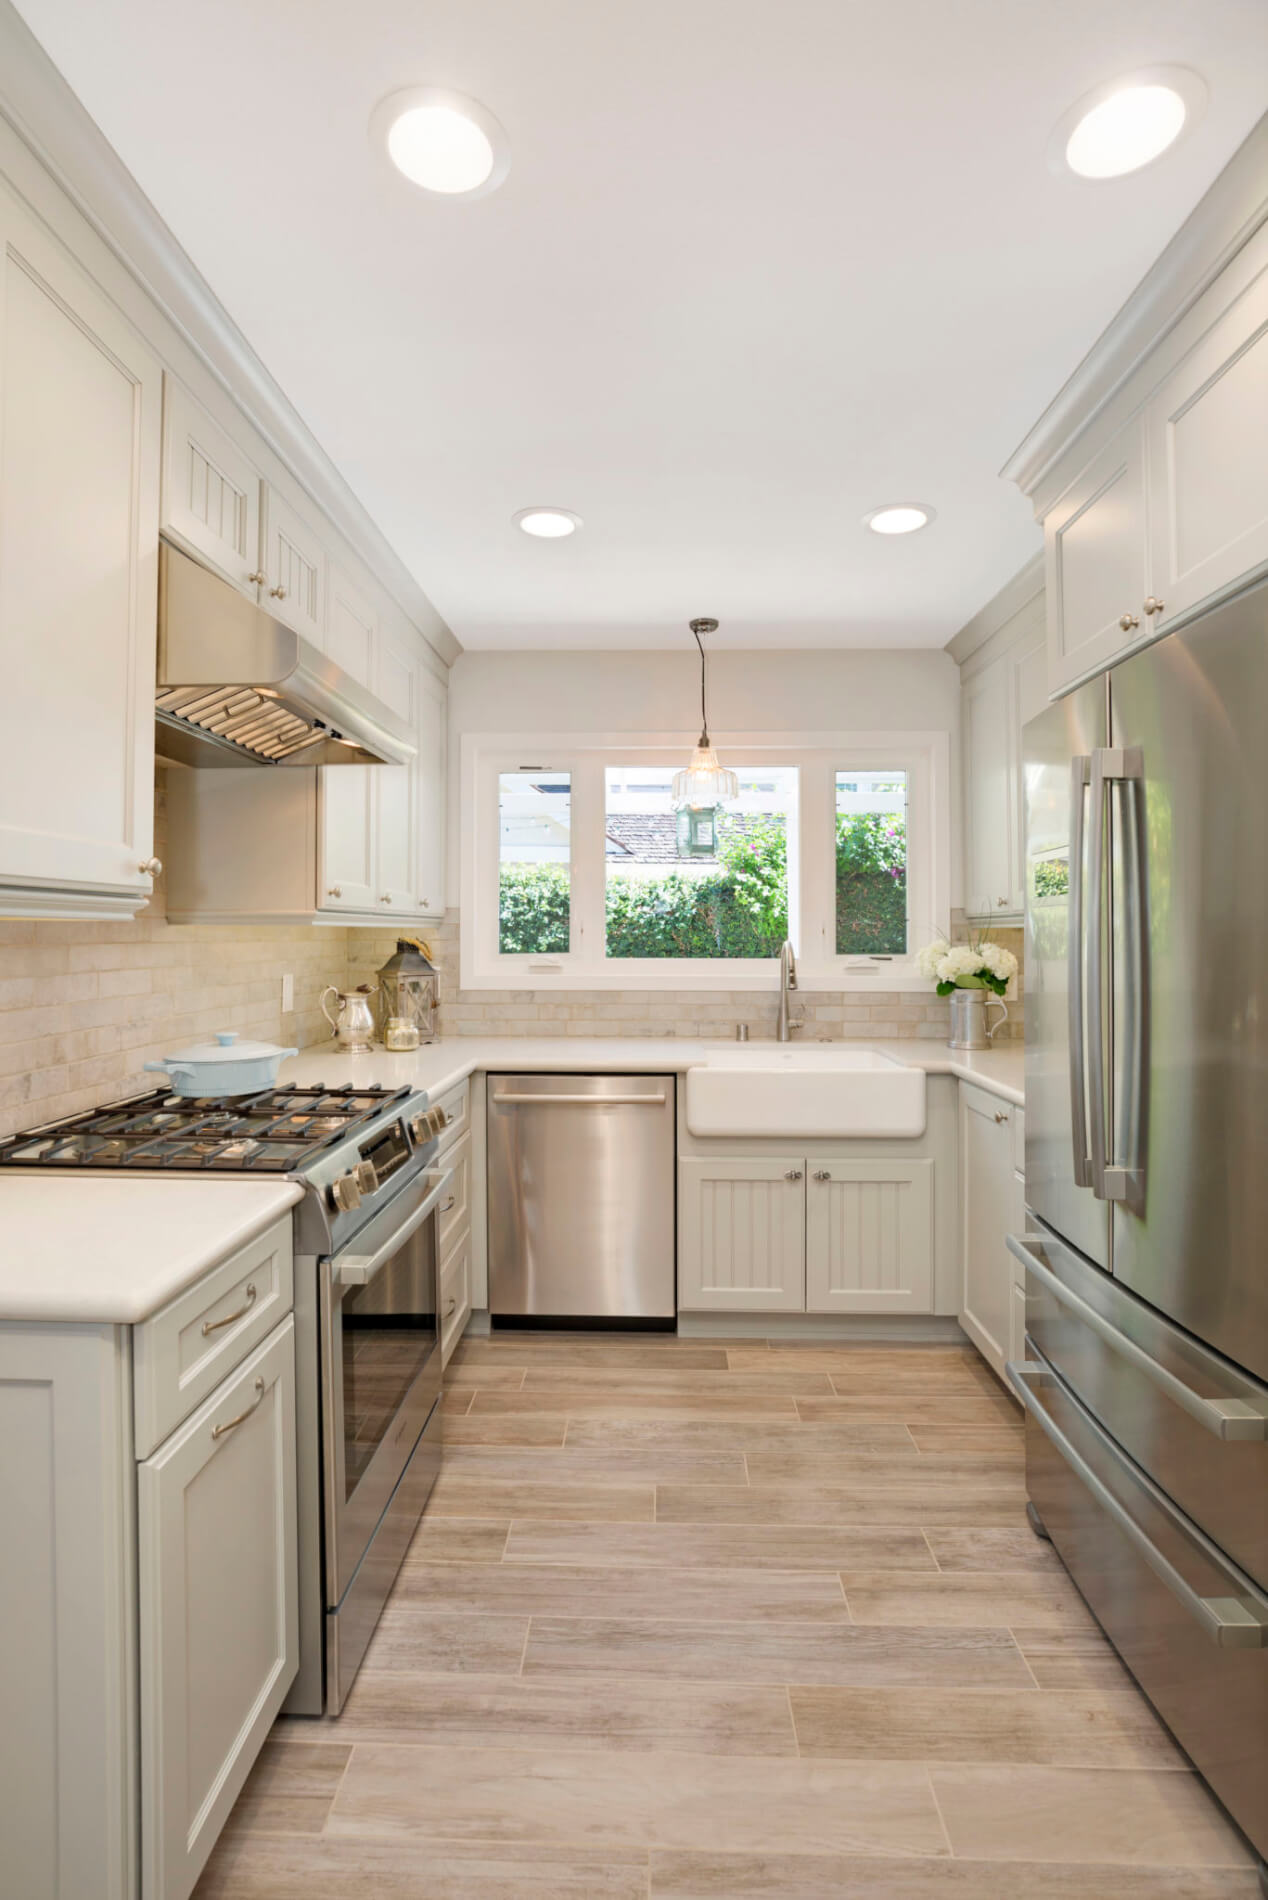 Remodeled Gally Style Kitchen, Small Kitchen Remodel with Flooring, Fully Custom Kitchen Remodel Orange County